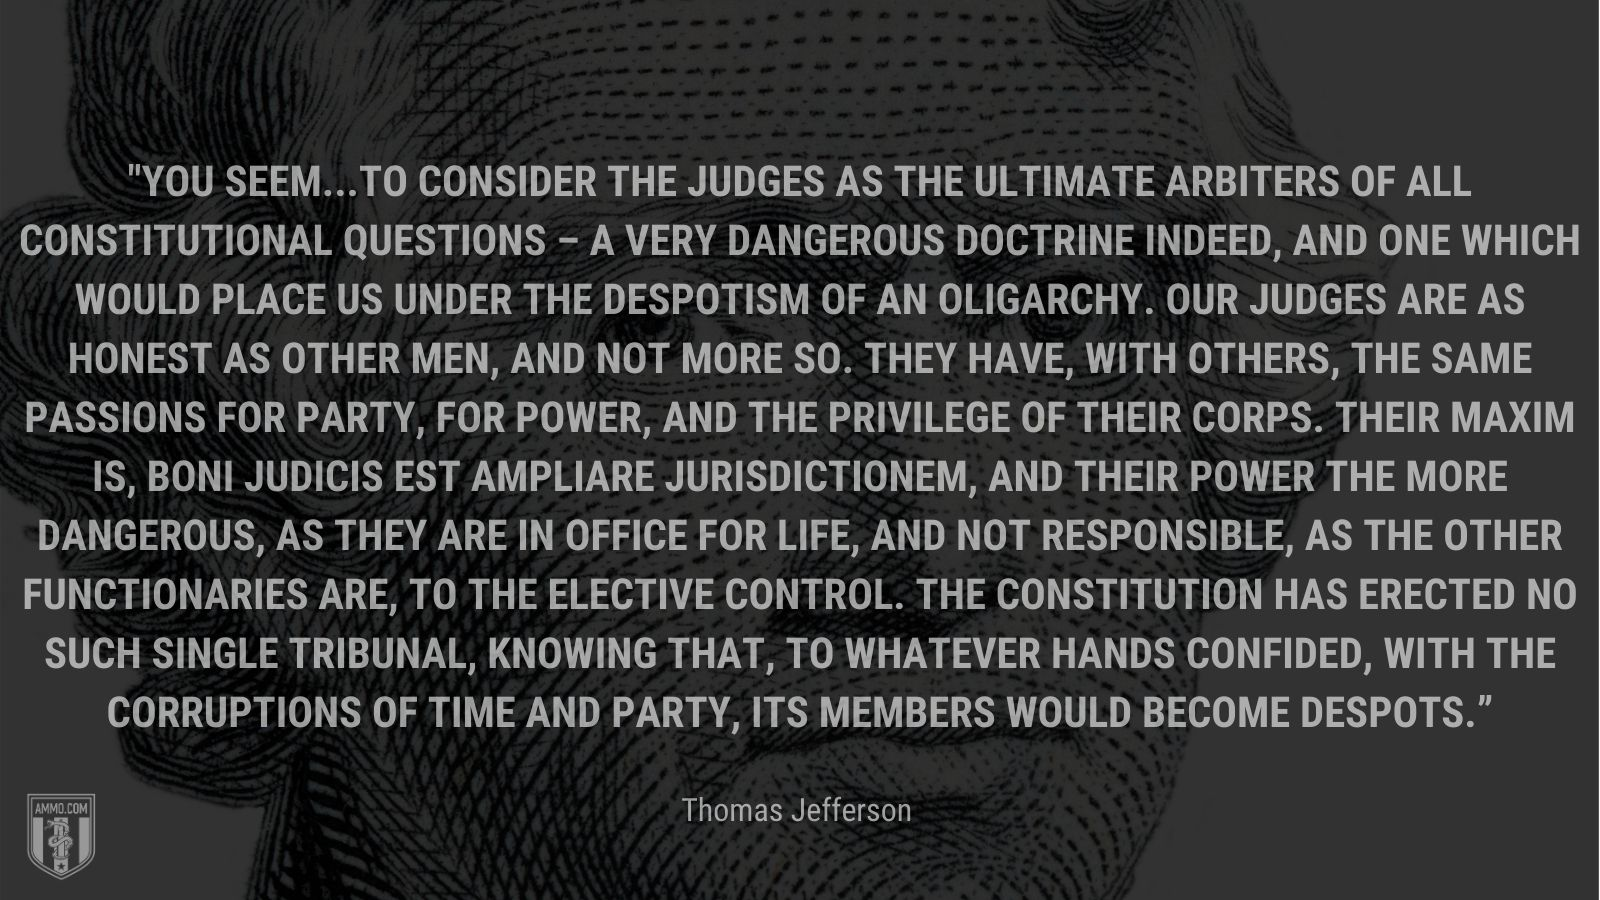 """""""You seem...to consider the judges as the ultimate arbiters of all constitutional questions – a very dangerous doctrine indeed, and one which would place us under the despotism of an oligarchy. Our Judges are as honest as other men, and not more so. They have, with others, the same passions for party, for power, and the privilege of their corps. Their maxim is, boni judicis est ampliare jurisdictionem, and their power the more dangerous, as they are in office for life, and not responsible, as the other functionaries are, to the elective control. The Constitution has erected no such single tribunal, knowing that, to whatever hands confided, with the corruptions of time and party, its members would become despots."""" - Thomas Jefferson"""